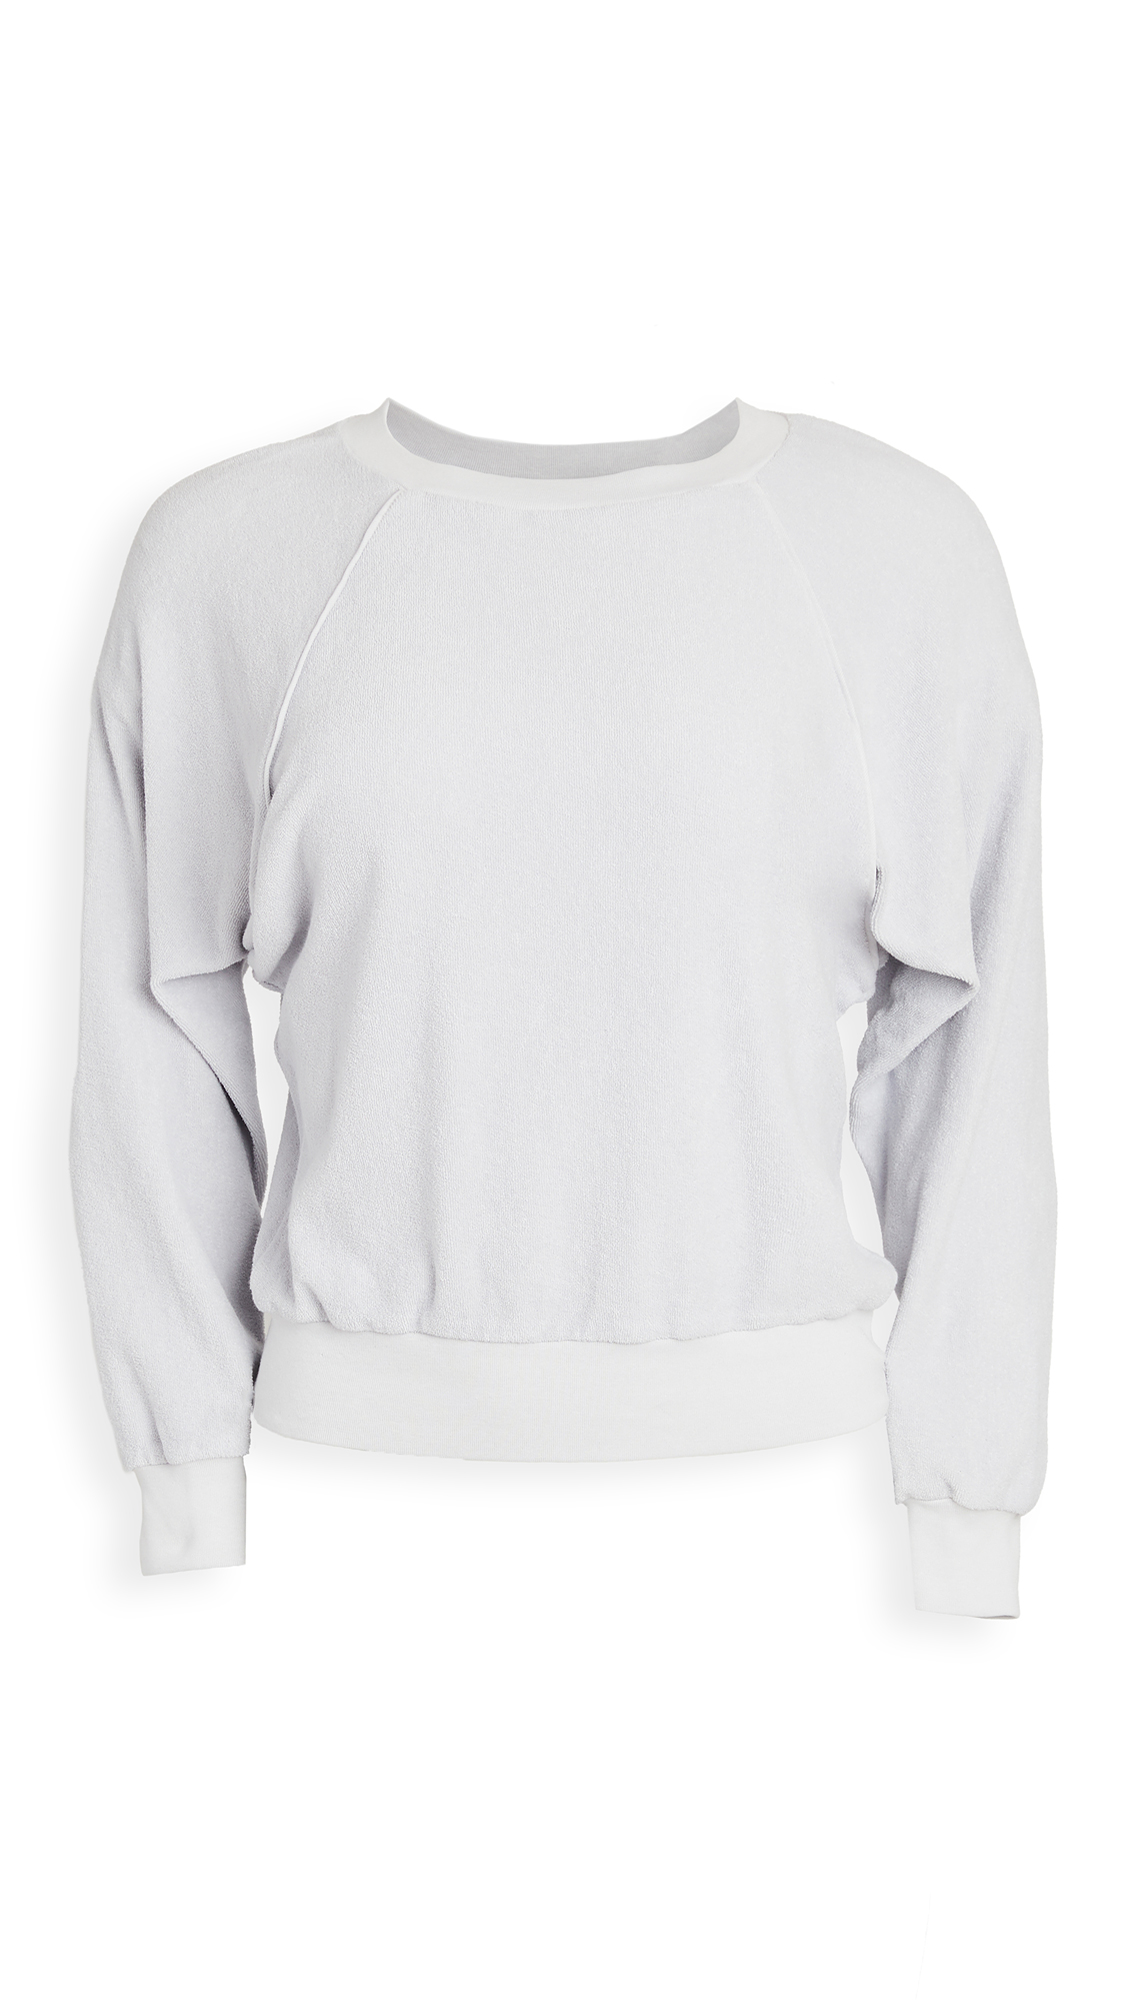 Kondi Terry Raglan Sleeve Top